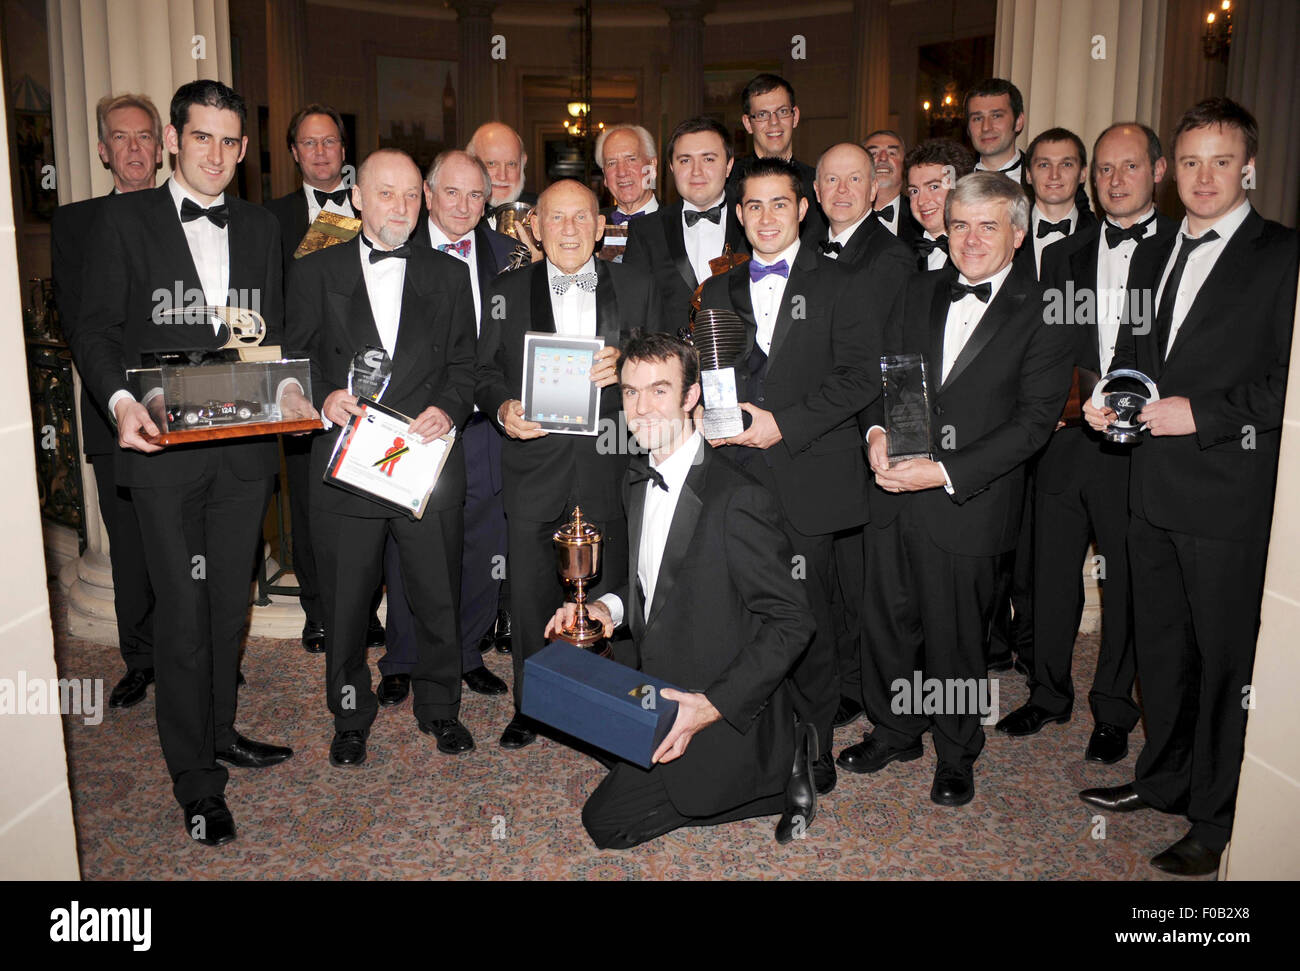 The annual awards ceremony of the Motoring Writers Guild 2010 - Stock Image